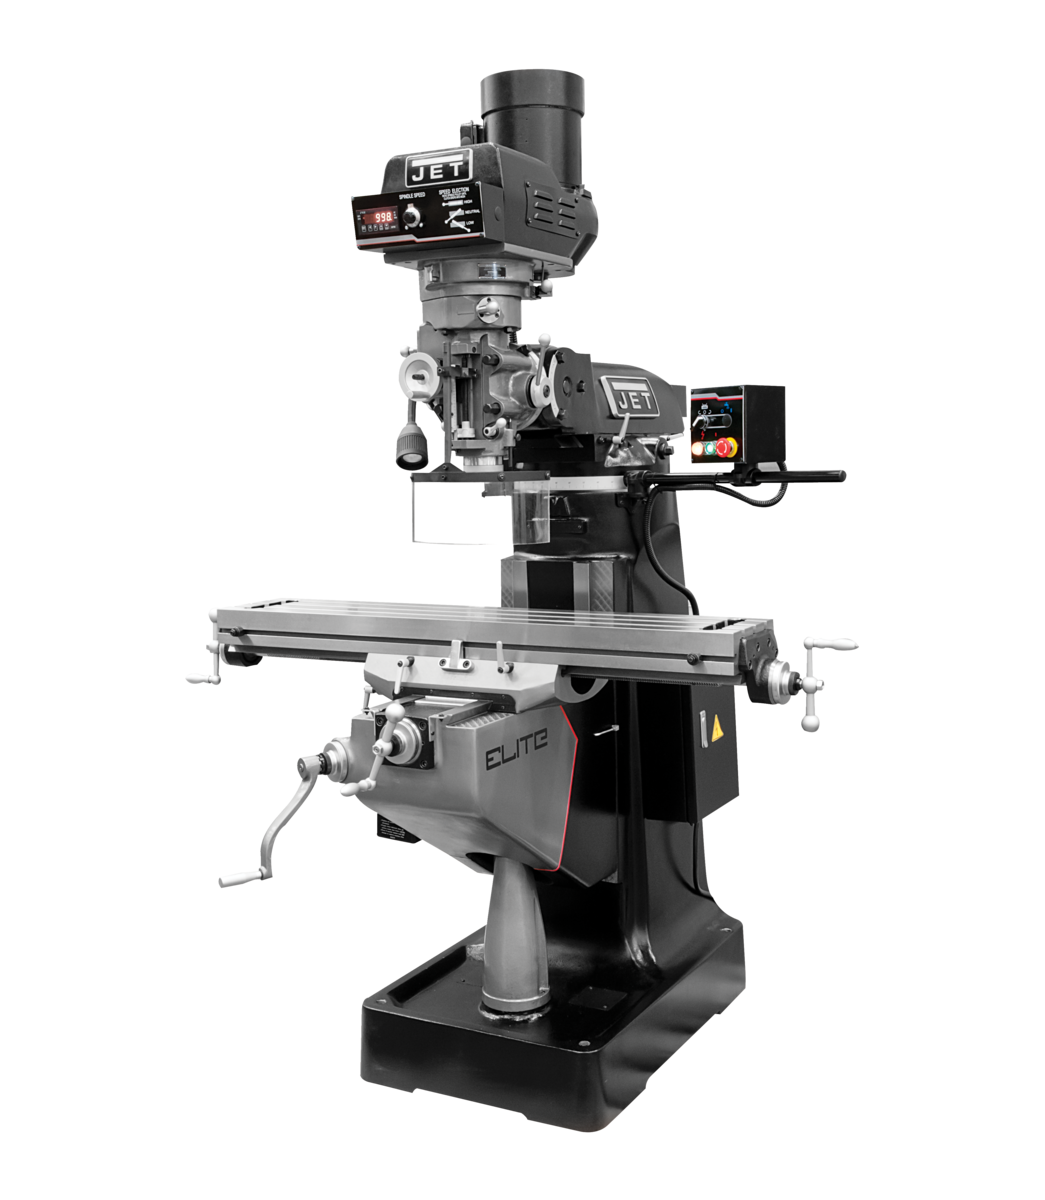 EVS-949 Mill with 3-Axis Newall DP700 (Knee) DRO and X, Y-Axis JET Powerfeeds and USA Made Air Draw Bar